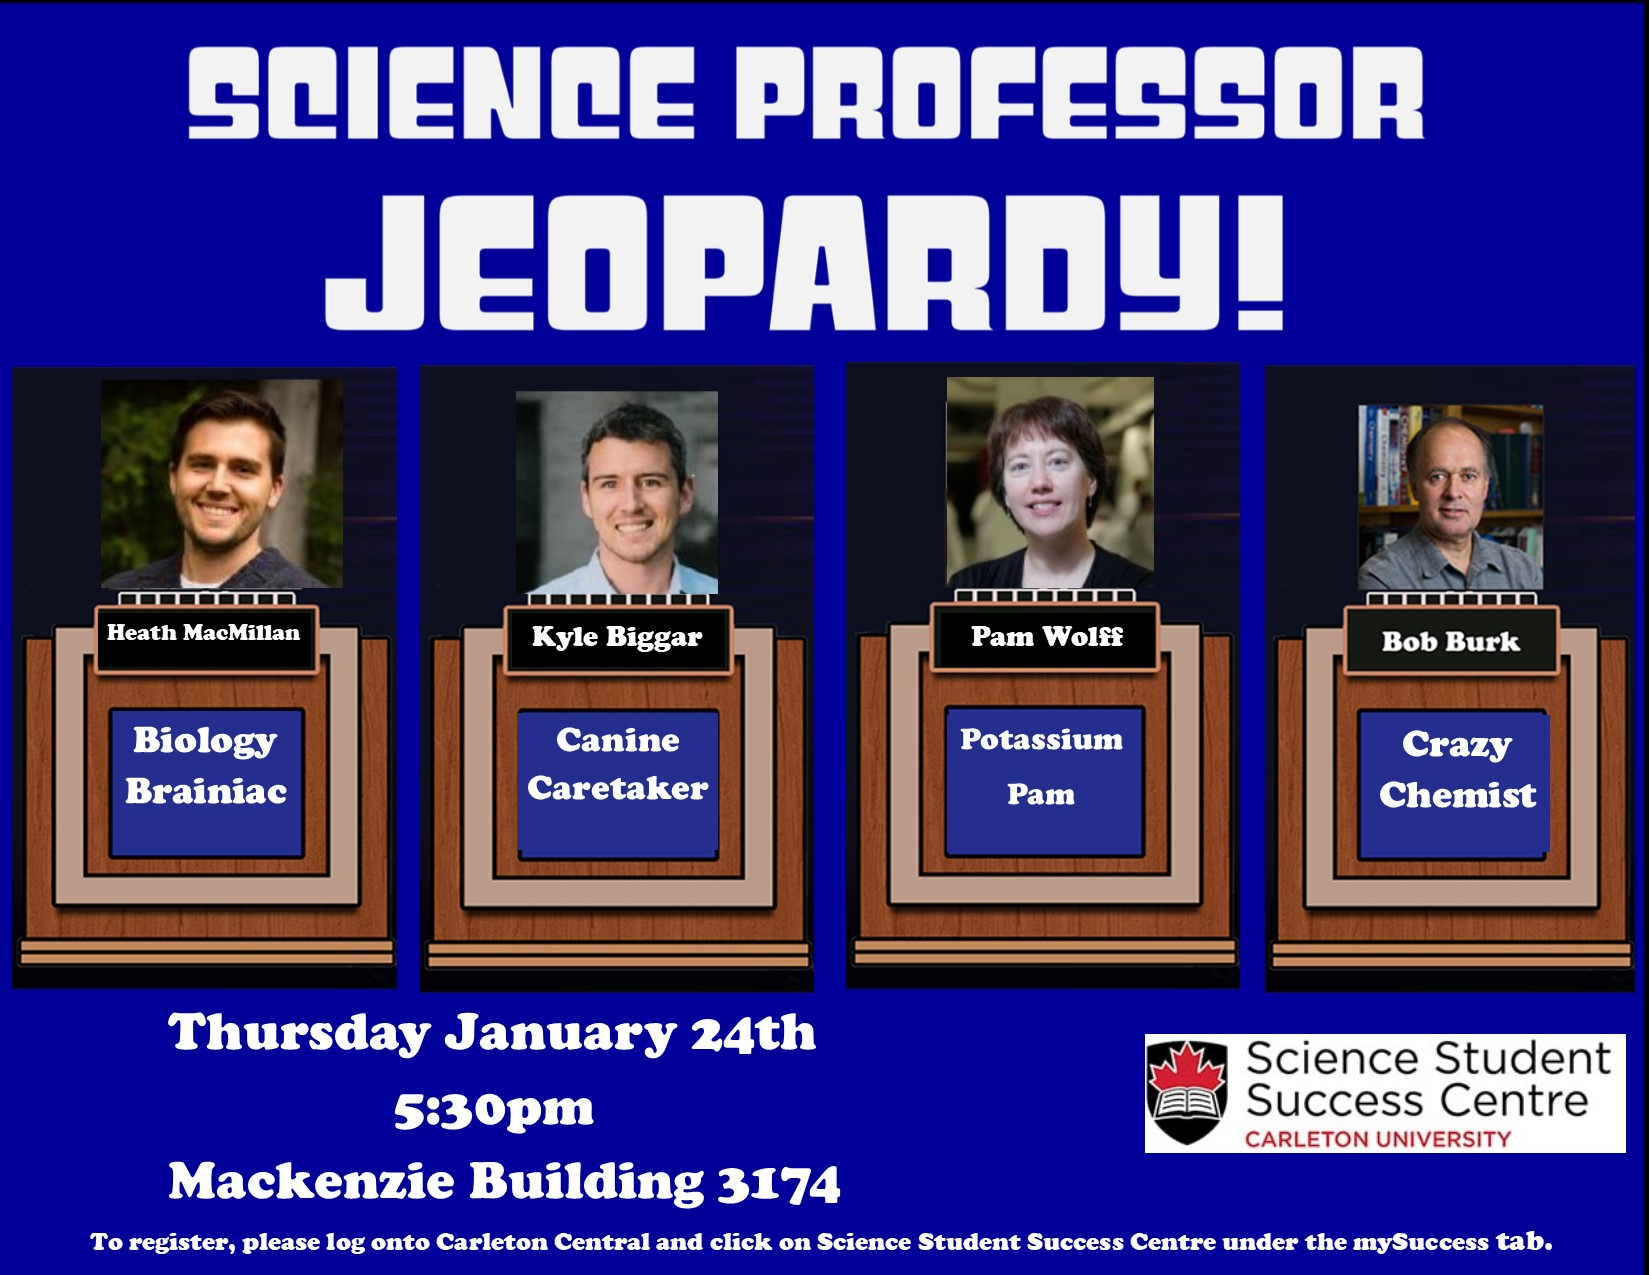 Poster for Science Jeopardy, featuring Heath McMillan, Kyle Biggar, Pam Wolff and Bob Burk